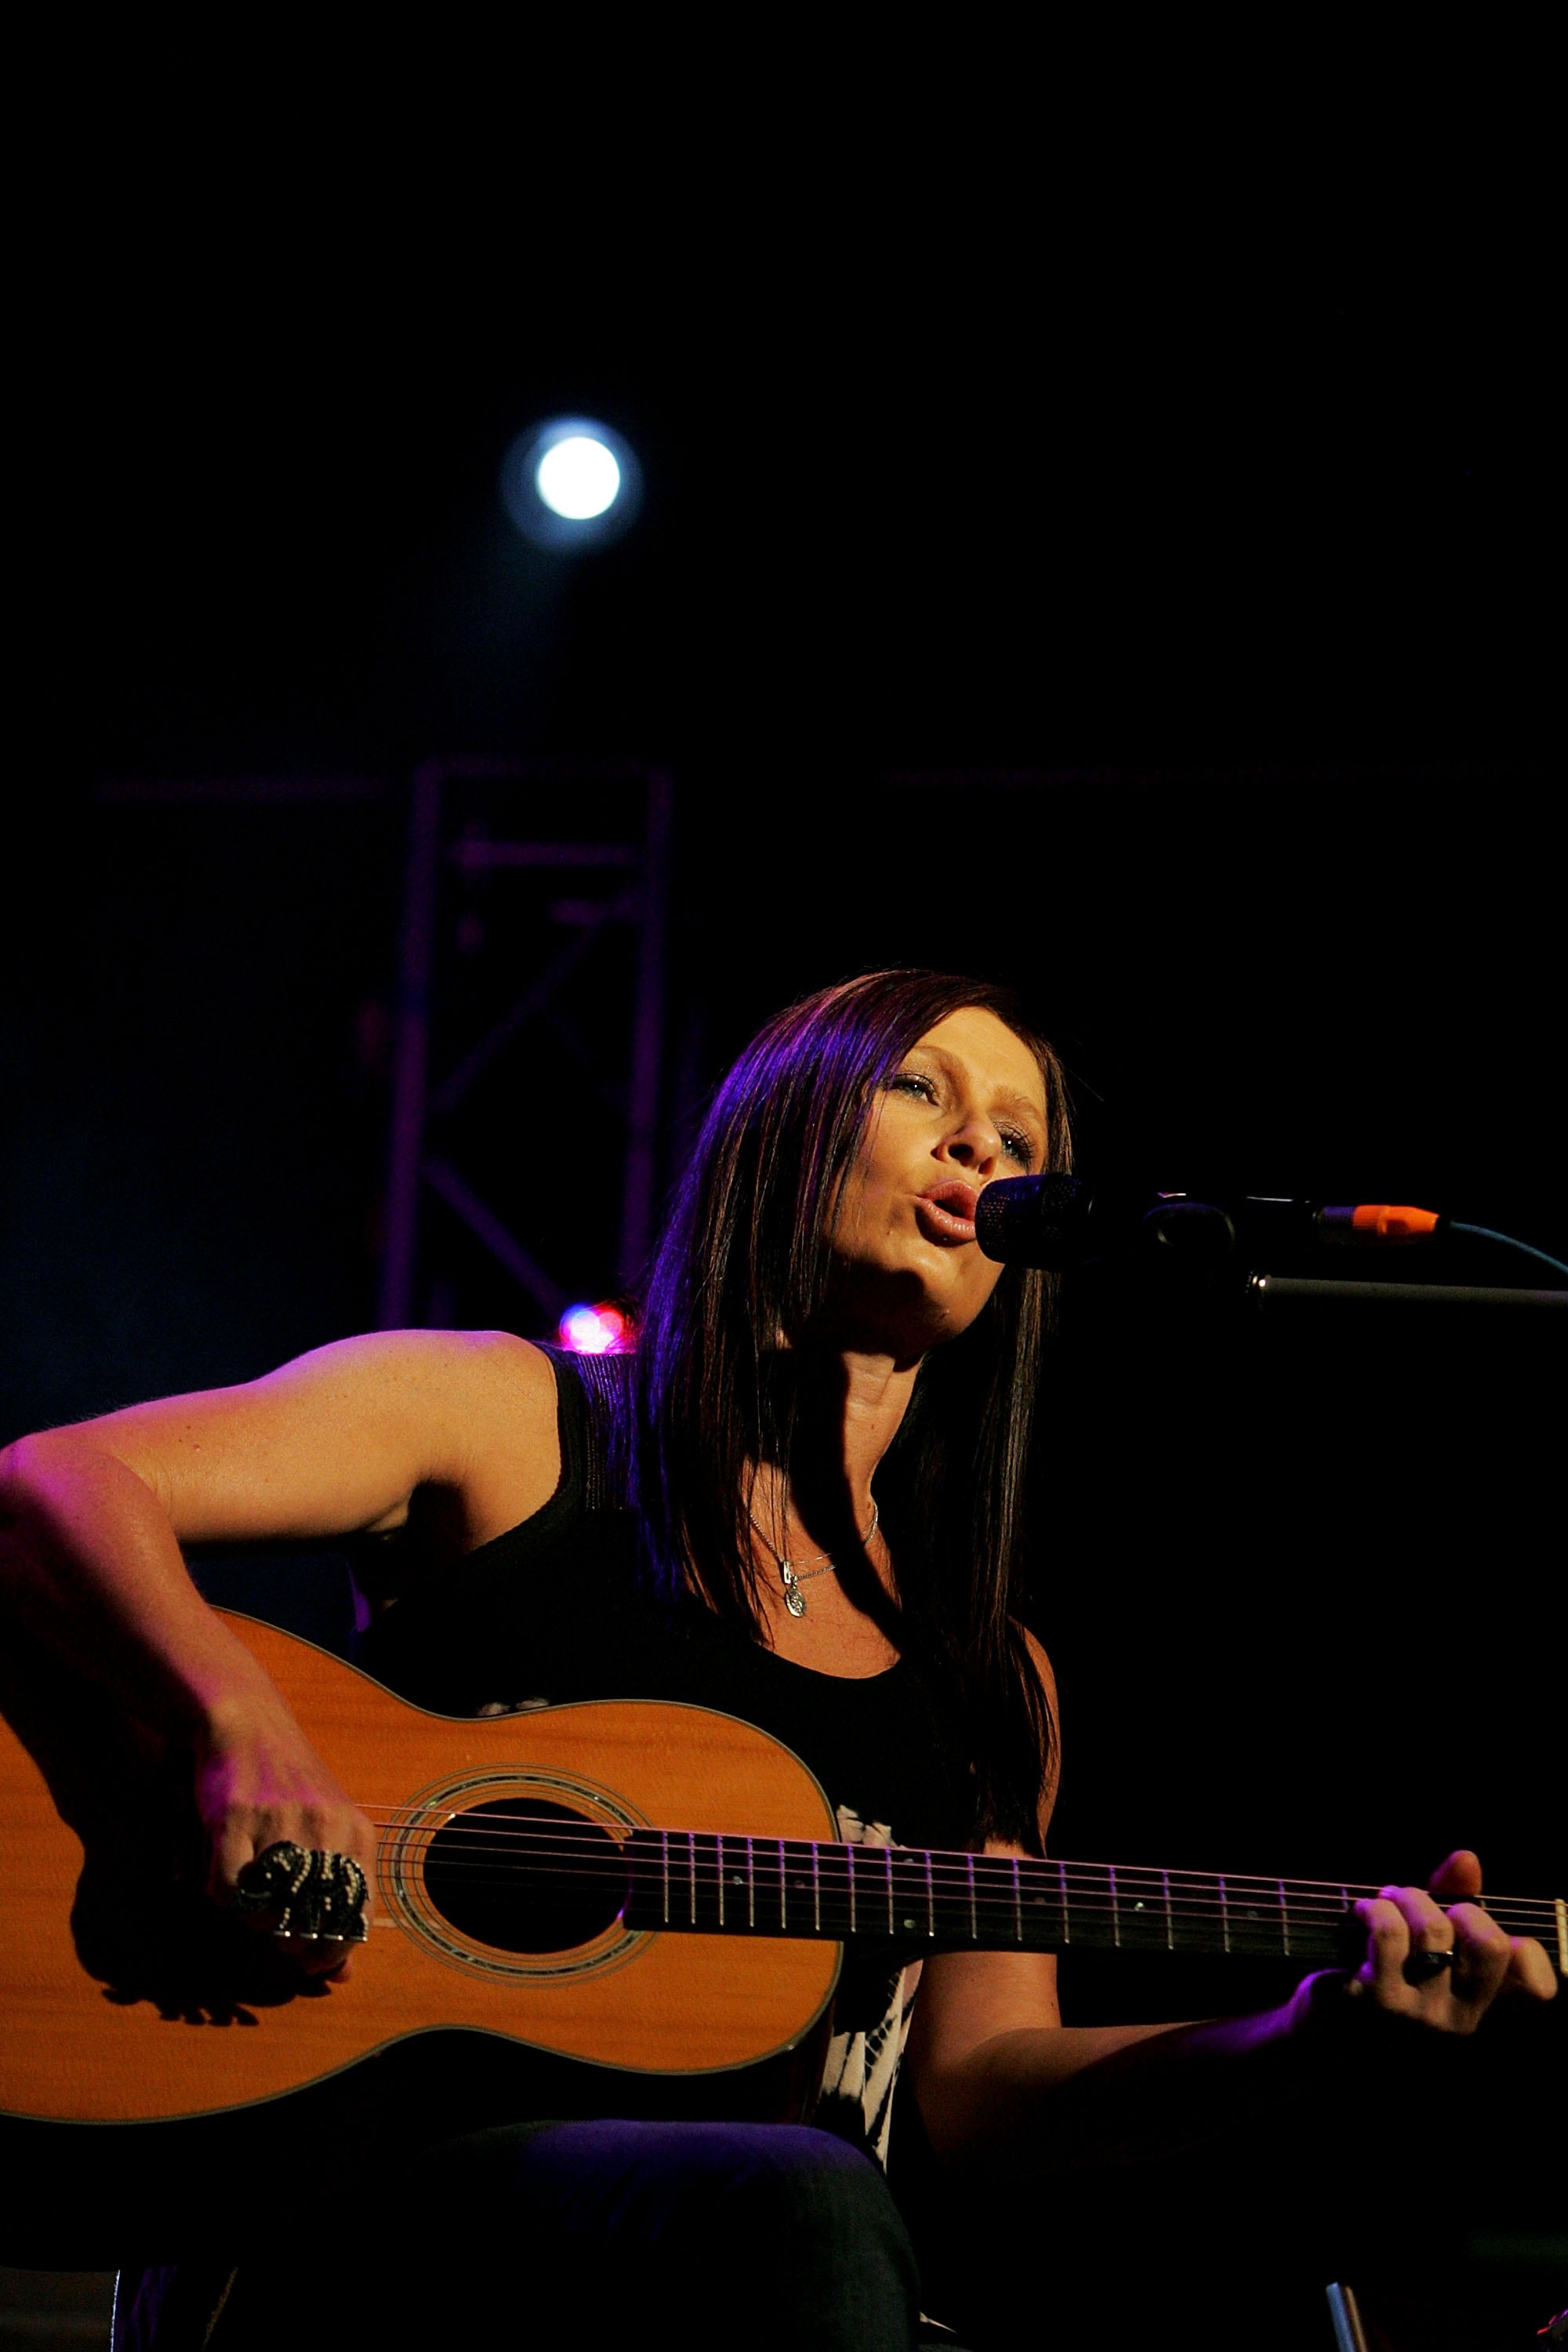 TAMWORTH, AUSTRALIA - JANUARY 22:  Kasey Chambers performs with husband Shane Nicholson at Wests Blazes during the 2010 Tamworth Country Music Festival on January 22, 2010 in Tamworth, Australia.  (Photo by Lisa Maree Williams/Getty Images)